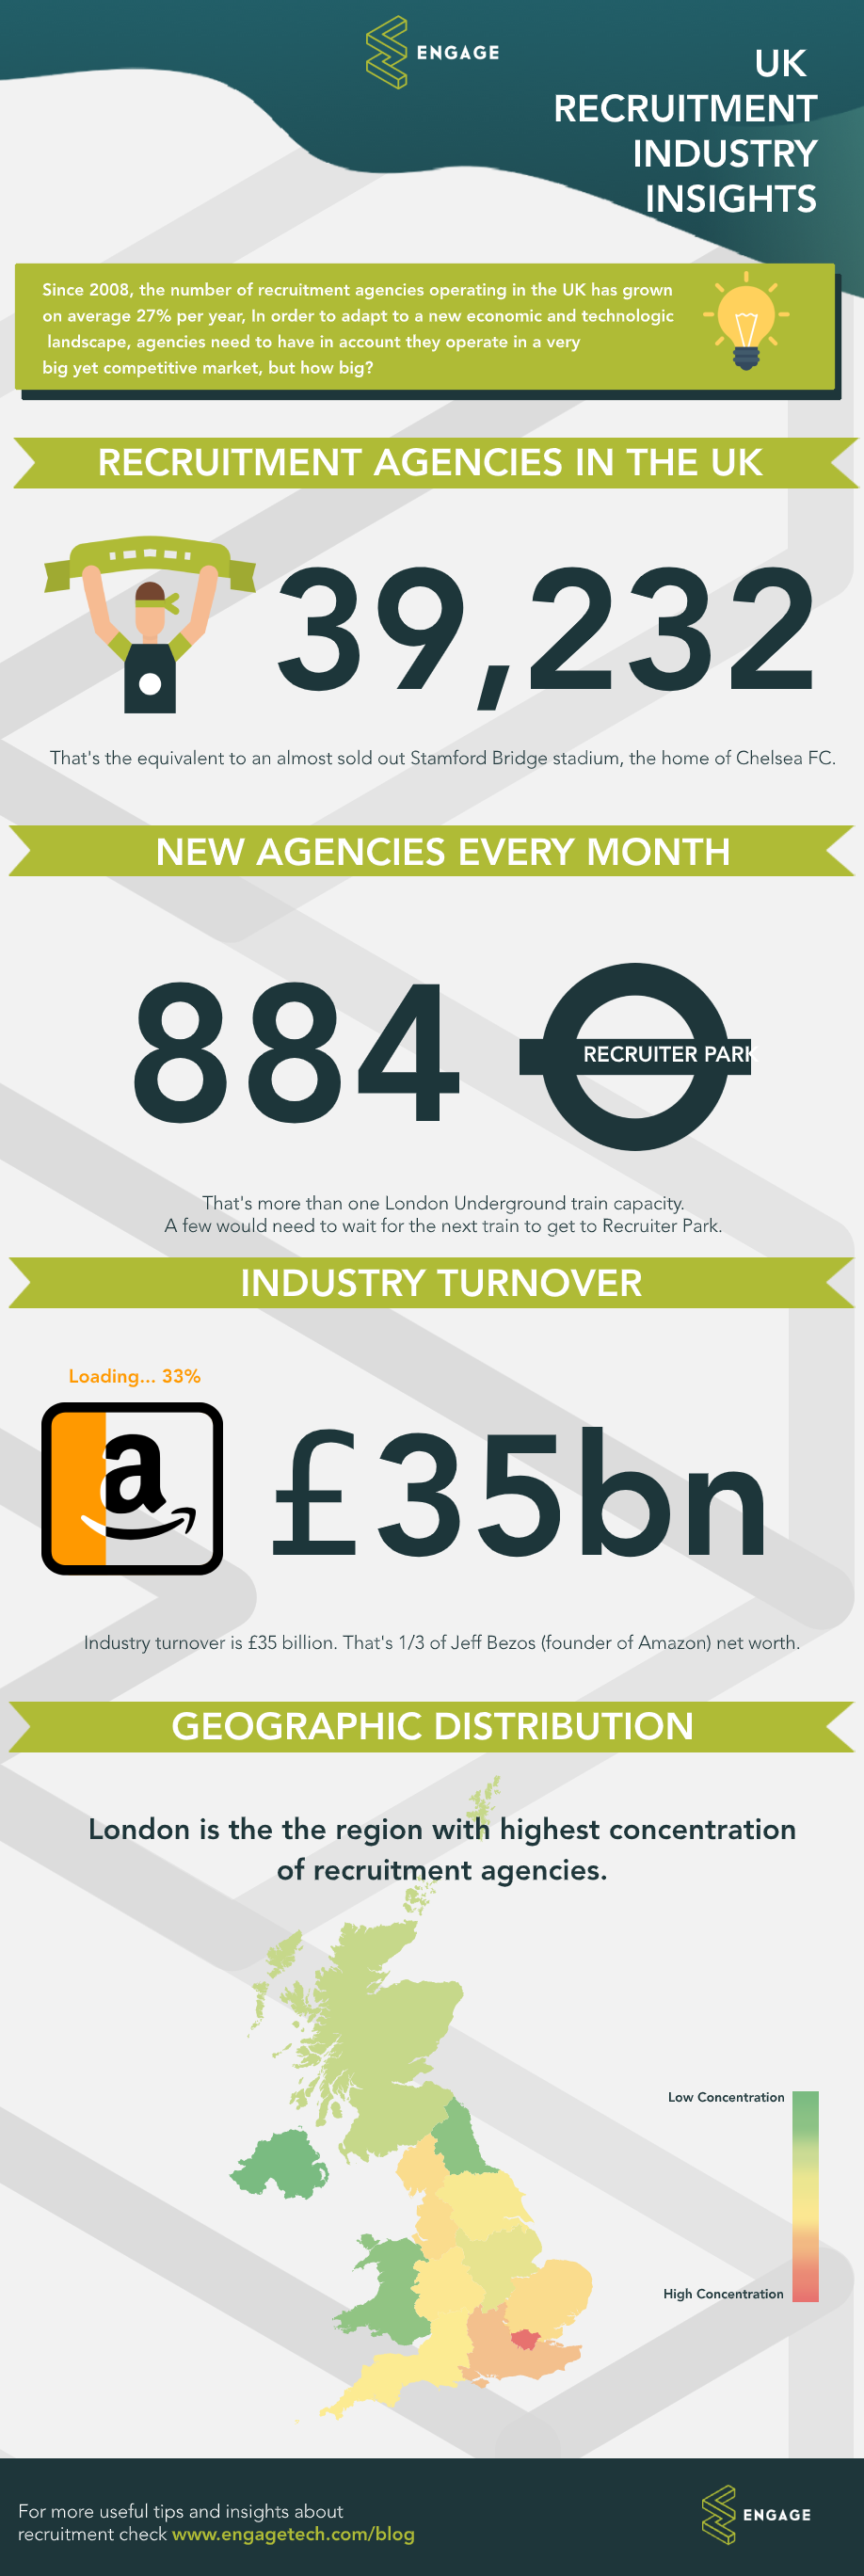 UK Recruitment Industry Insights Infographic 2019